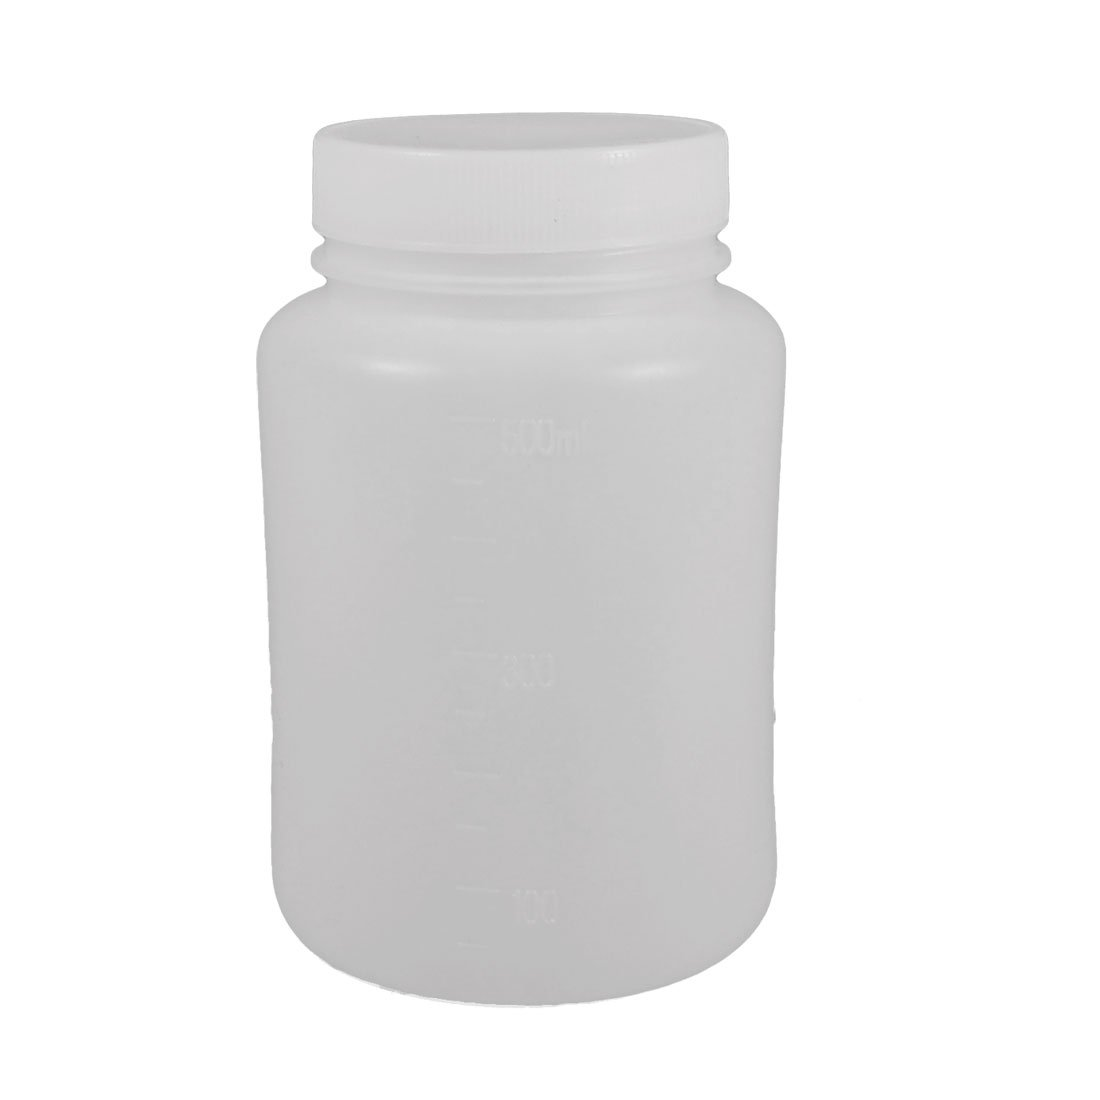 uxcell Laboratory Chemical Storage Case White Plastic Widemouth